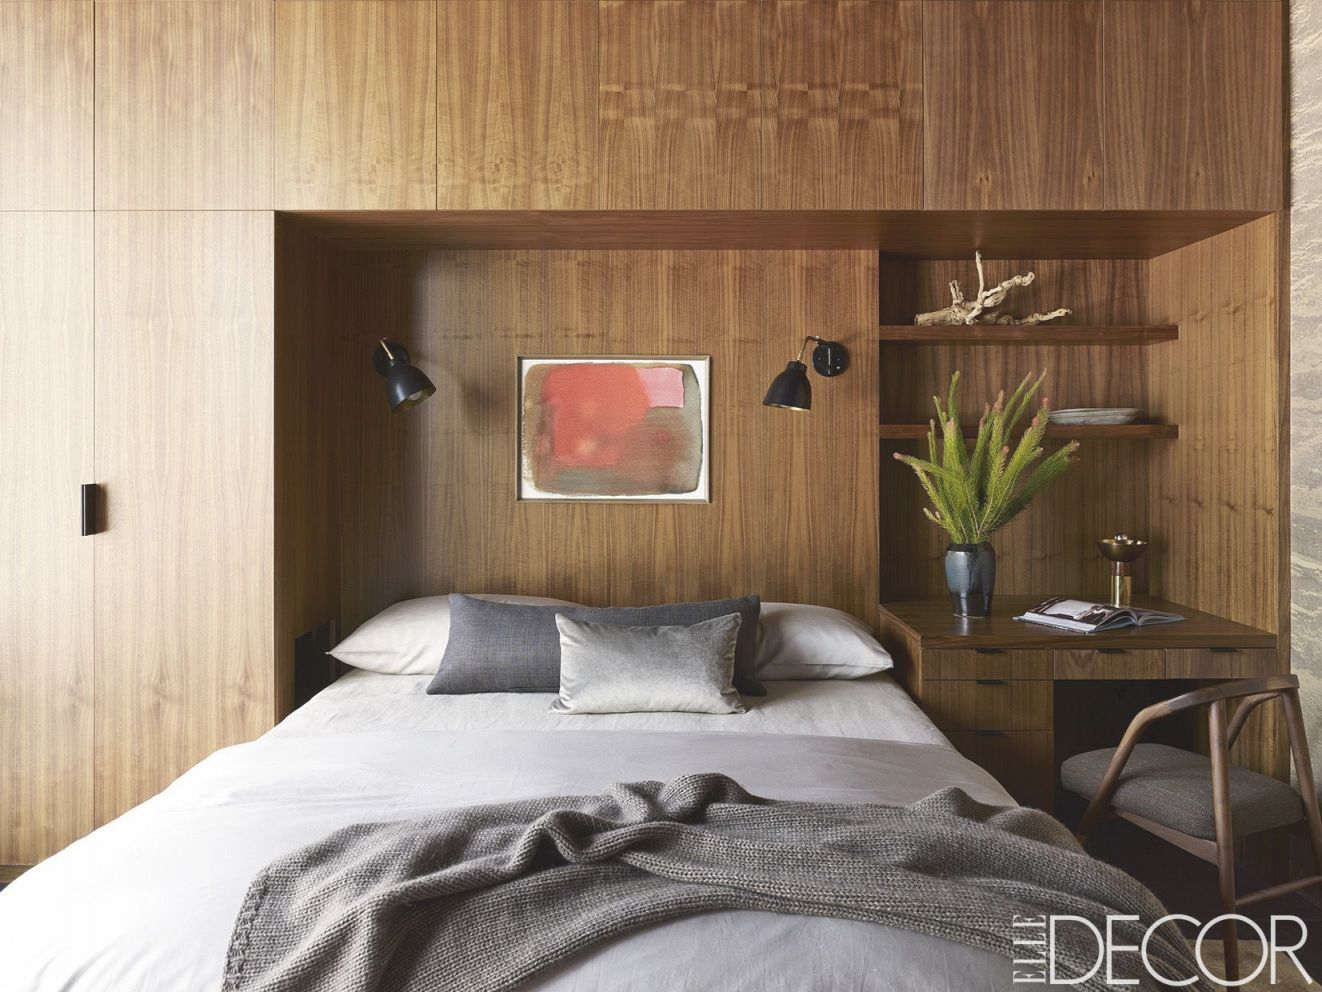 55 Small Bedroom Design Ideas – Decorating Tips For Small within Small Bedroom Decoration Ideas